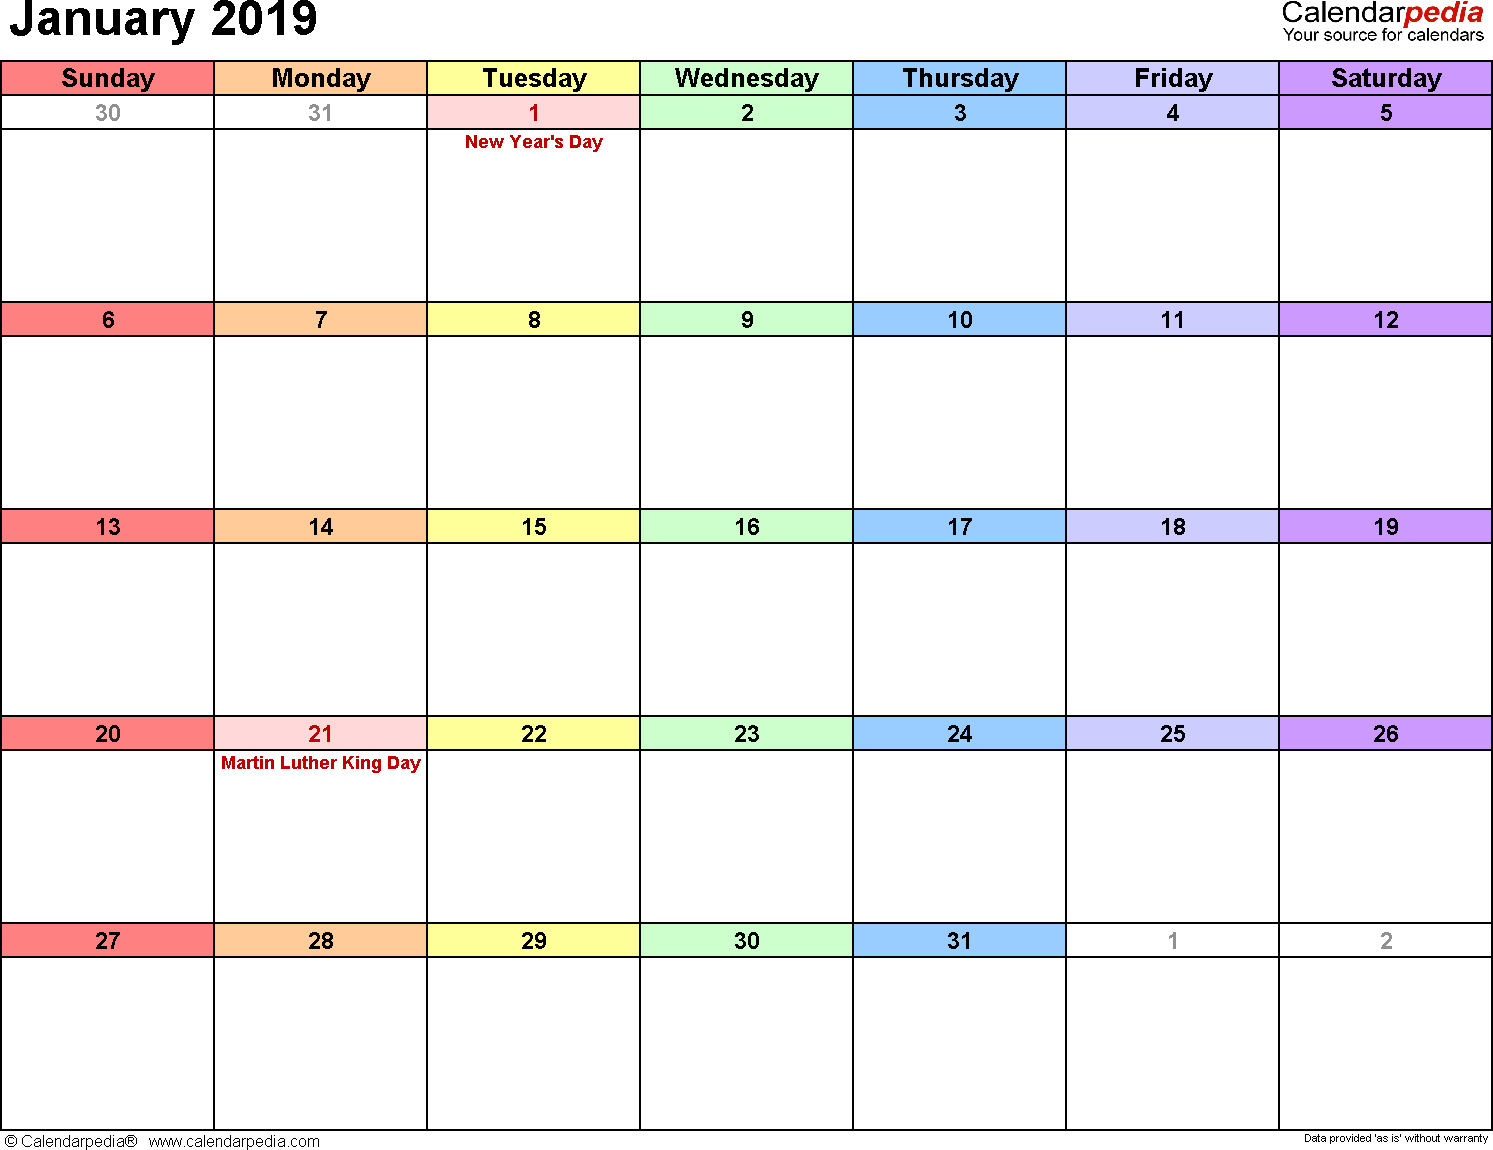 Cute Canada Blank Editable January Cute Blank 2019 Calendar Word Templates Singapore To Print Blank January 2019 Calendar Templates Editable Cute Download